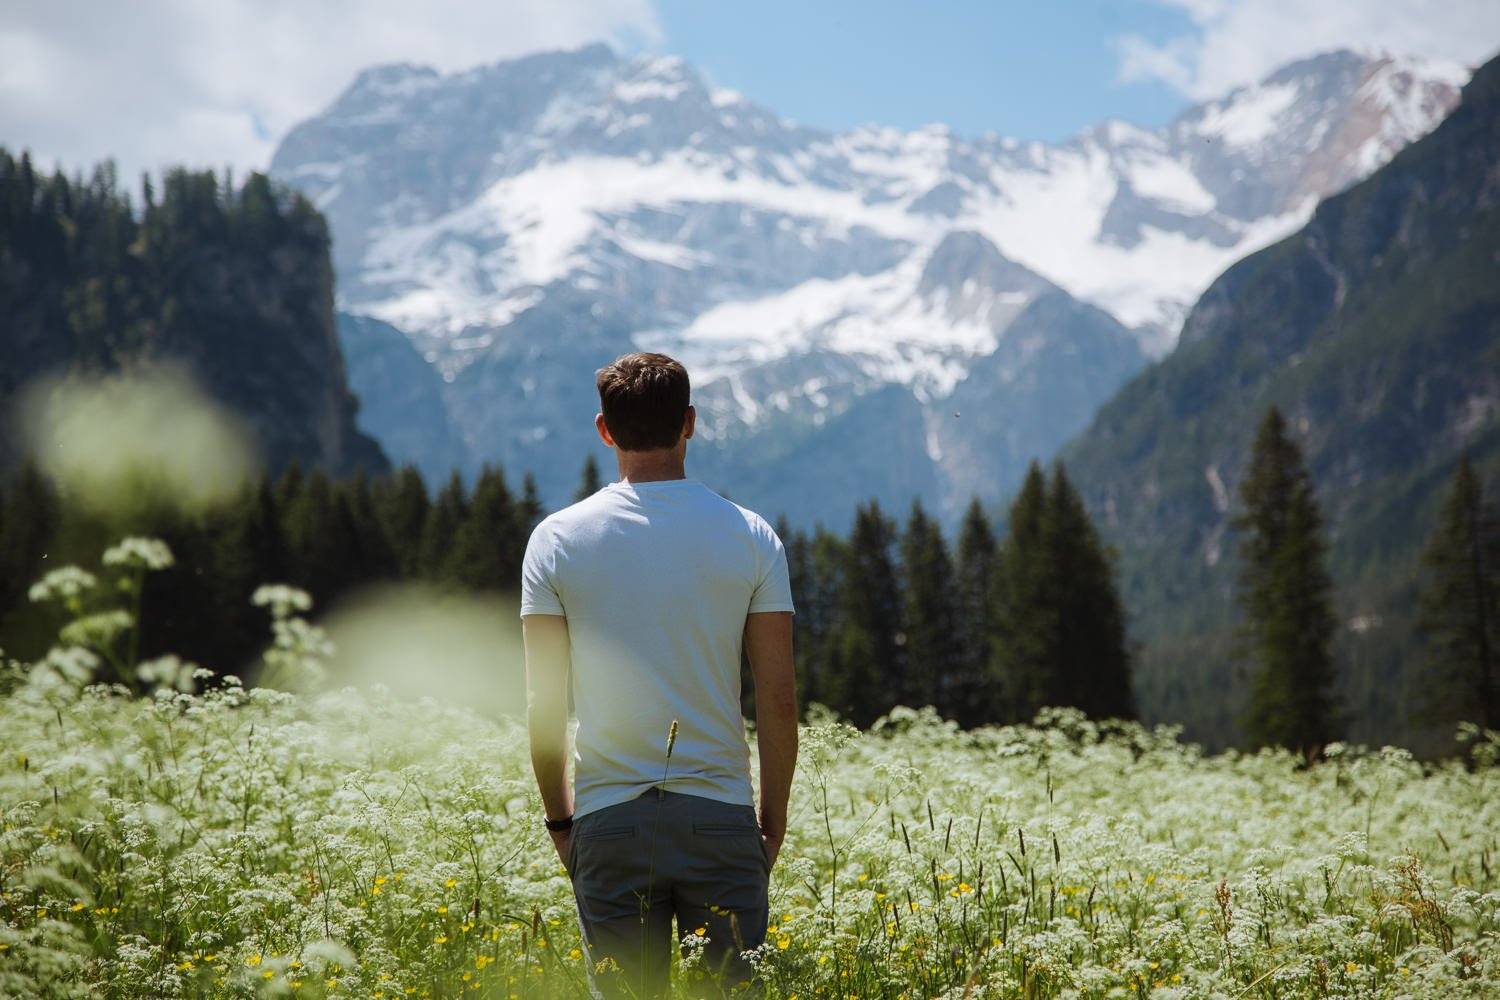 man stands in a field of flowers with huge mountains in the background